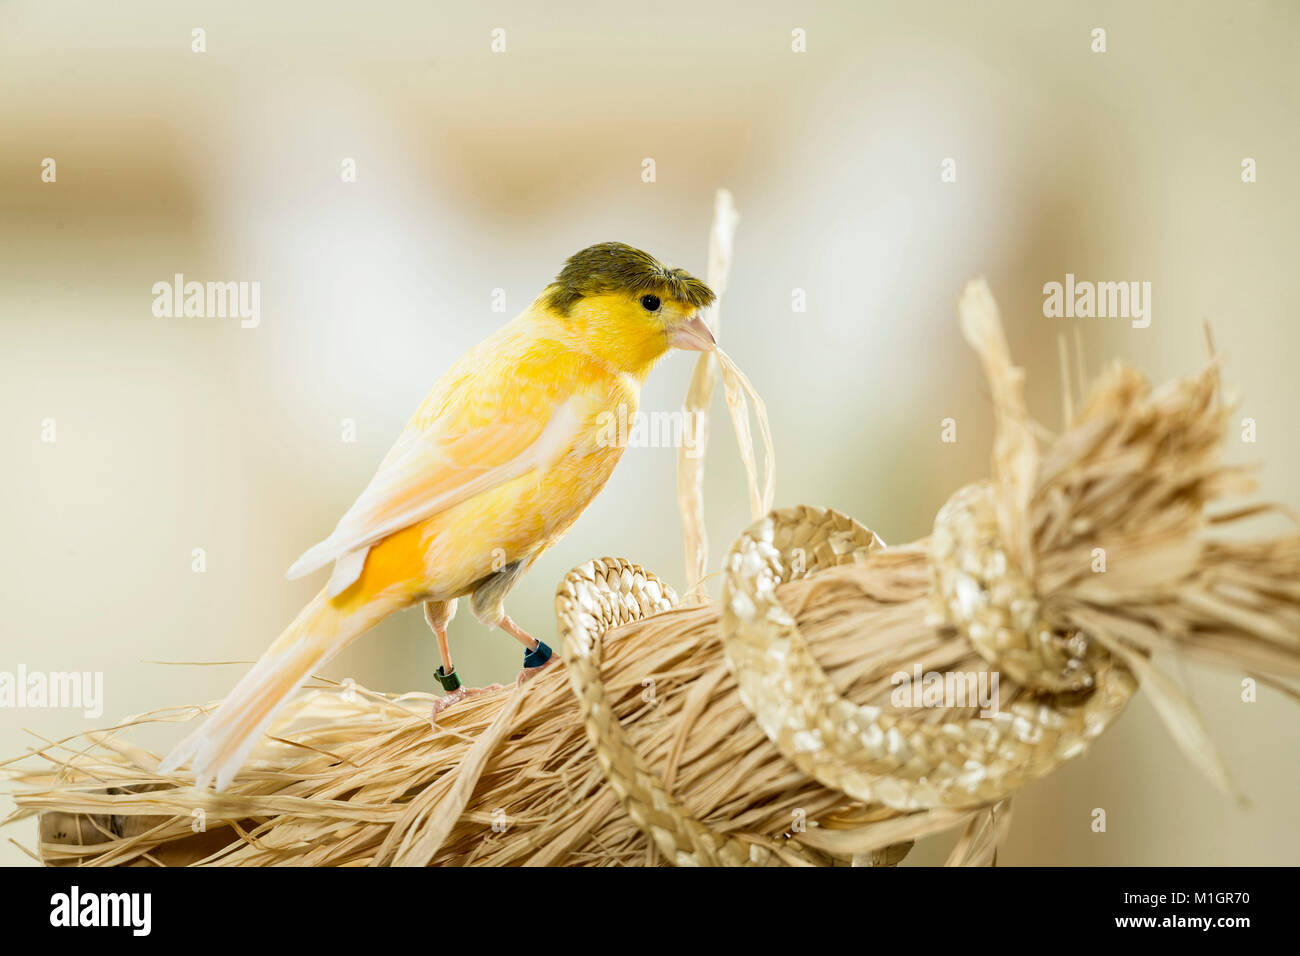 Domestic Canary. Crested adult pulling on bast fibres. Germany. - Stock Image